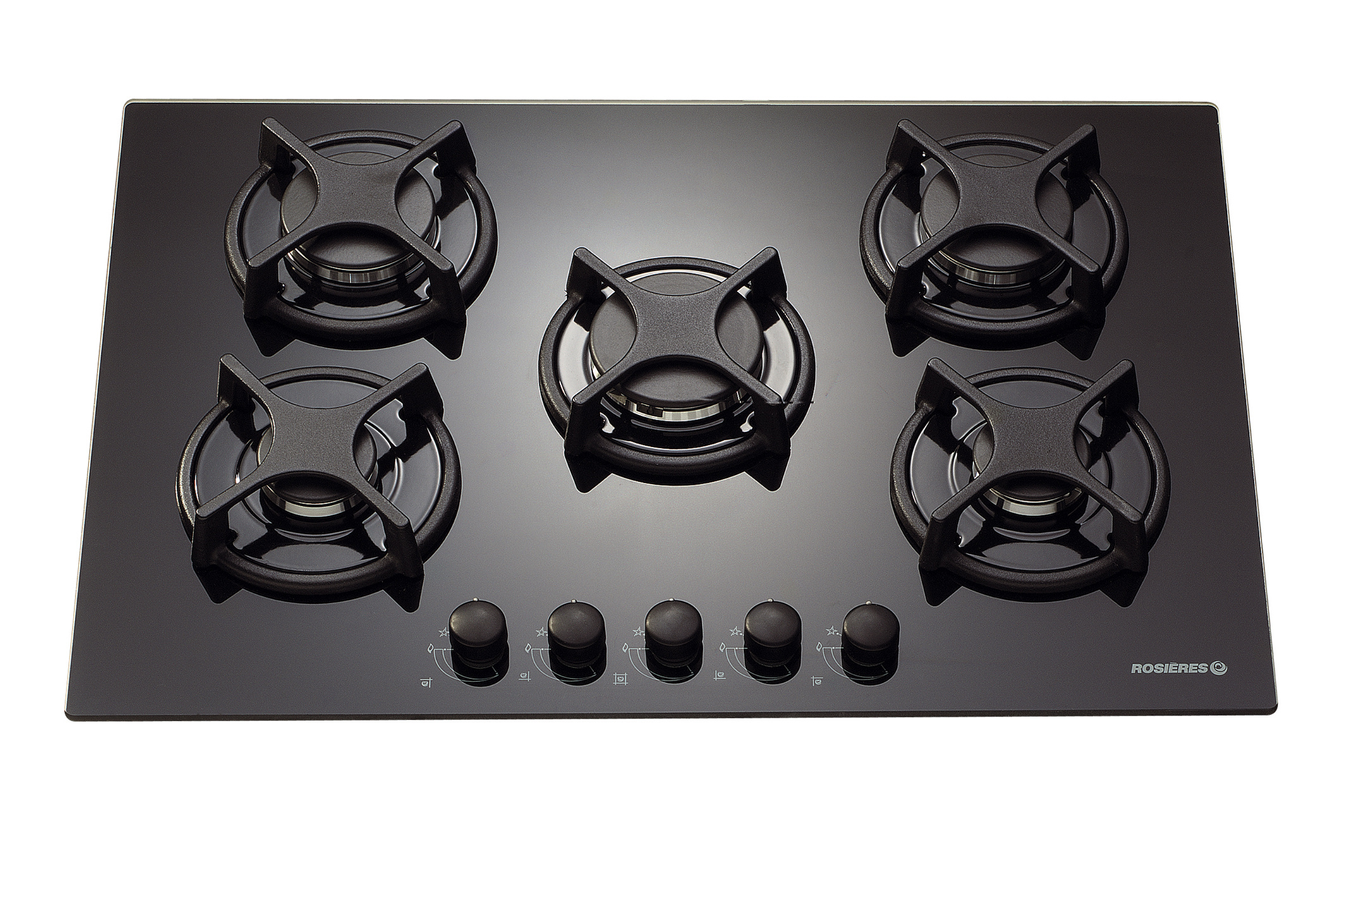 Plaque gaz rosieres rtv 750 fpn noir rtv750fpn 2069660 darty - Table de cuisson gaz induction ...